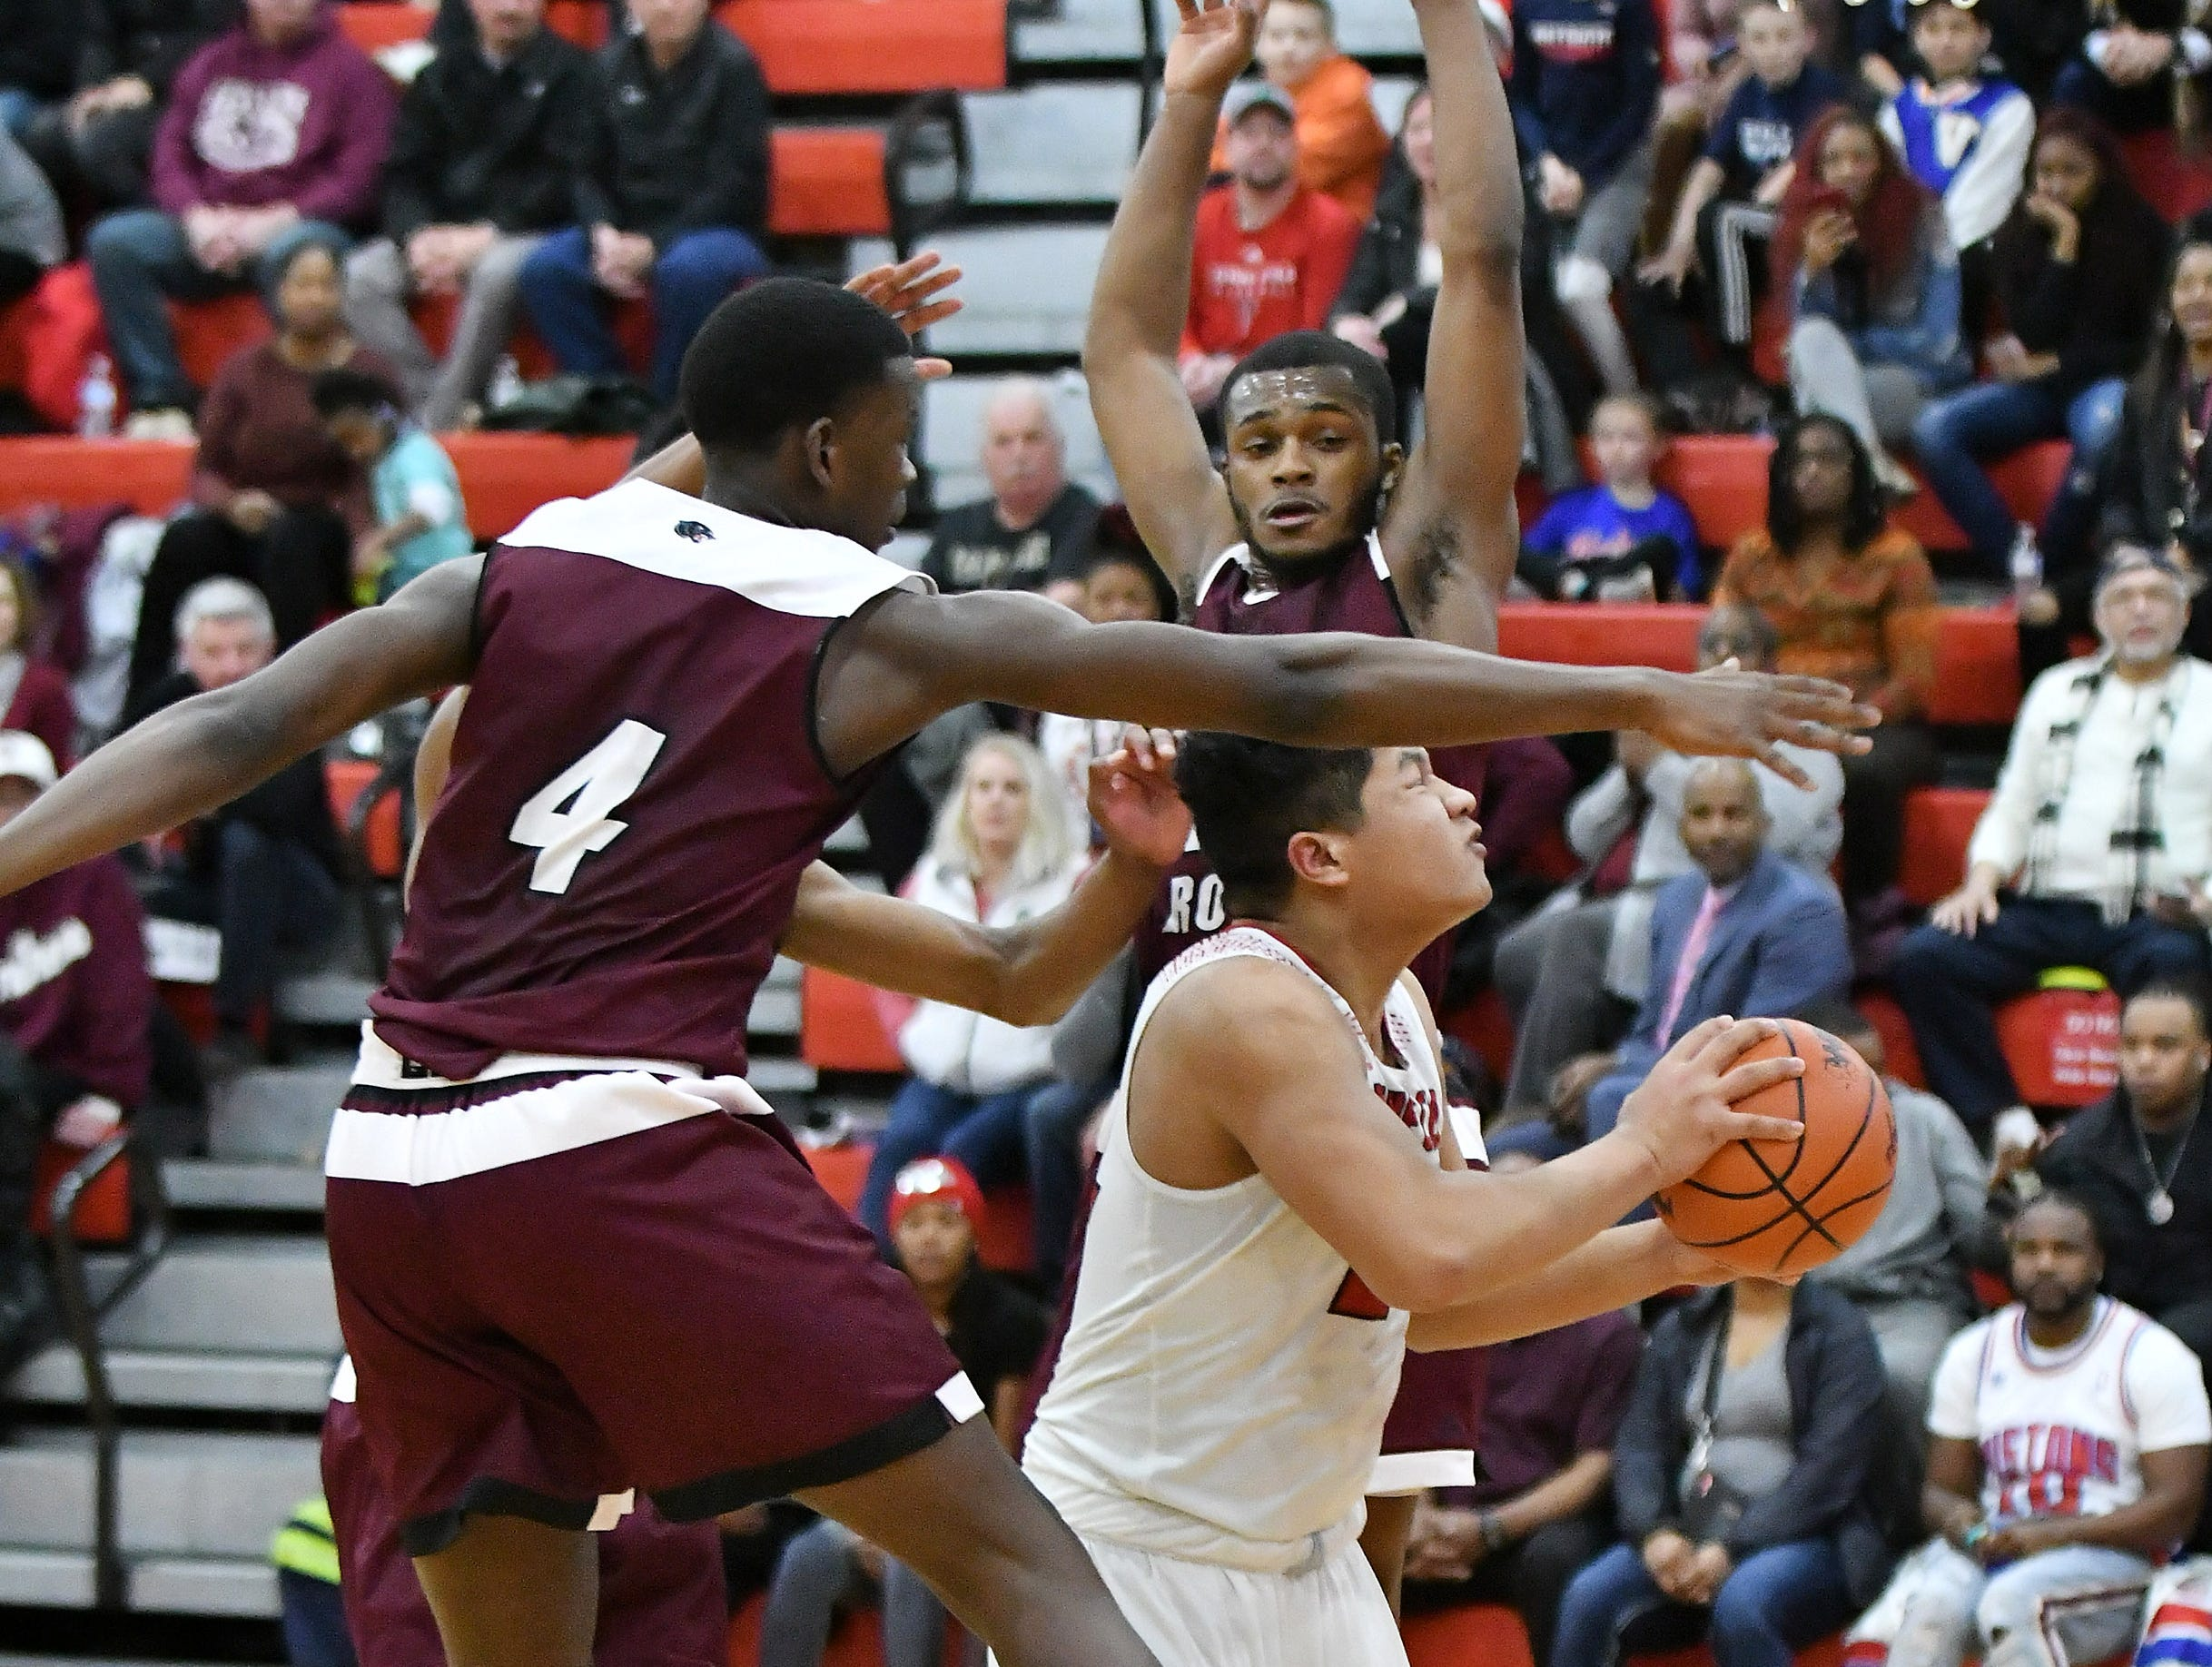 River Rouge's Legen Geeter (4) and Nigel Colvin, rear, converge on Divine Child's Aeron Latham in the first half.